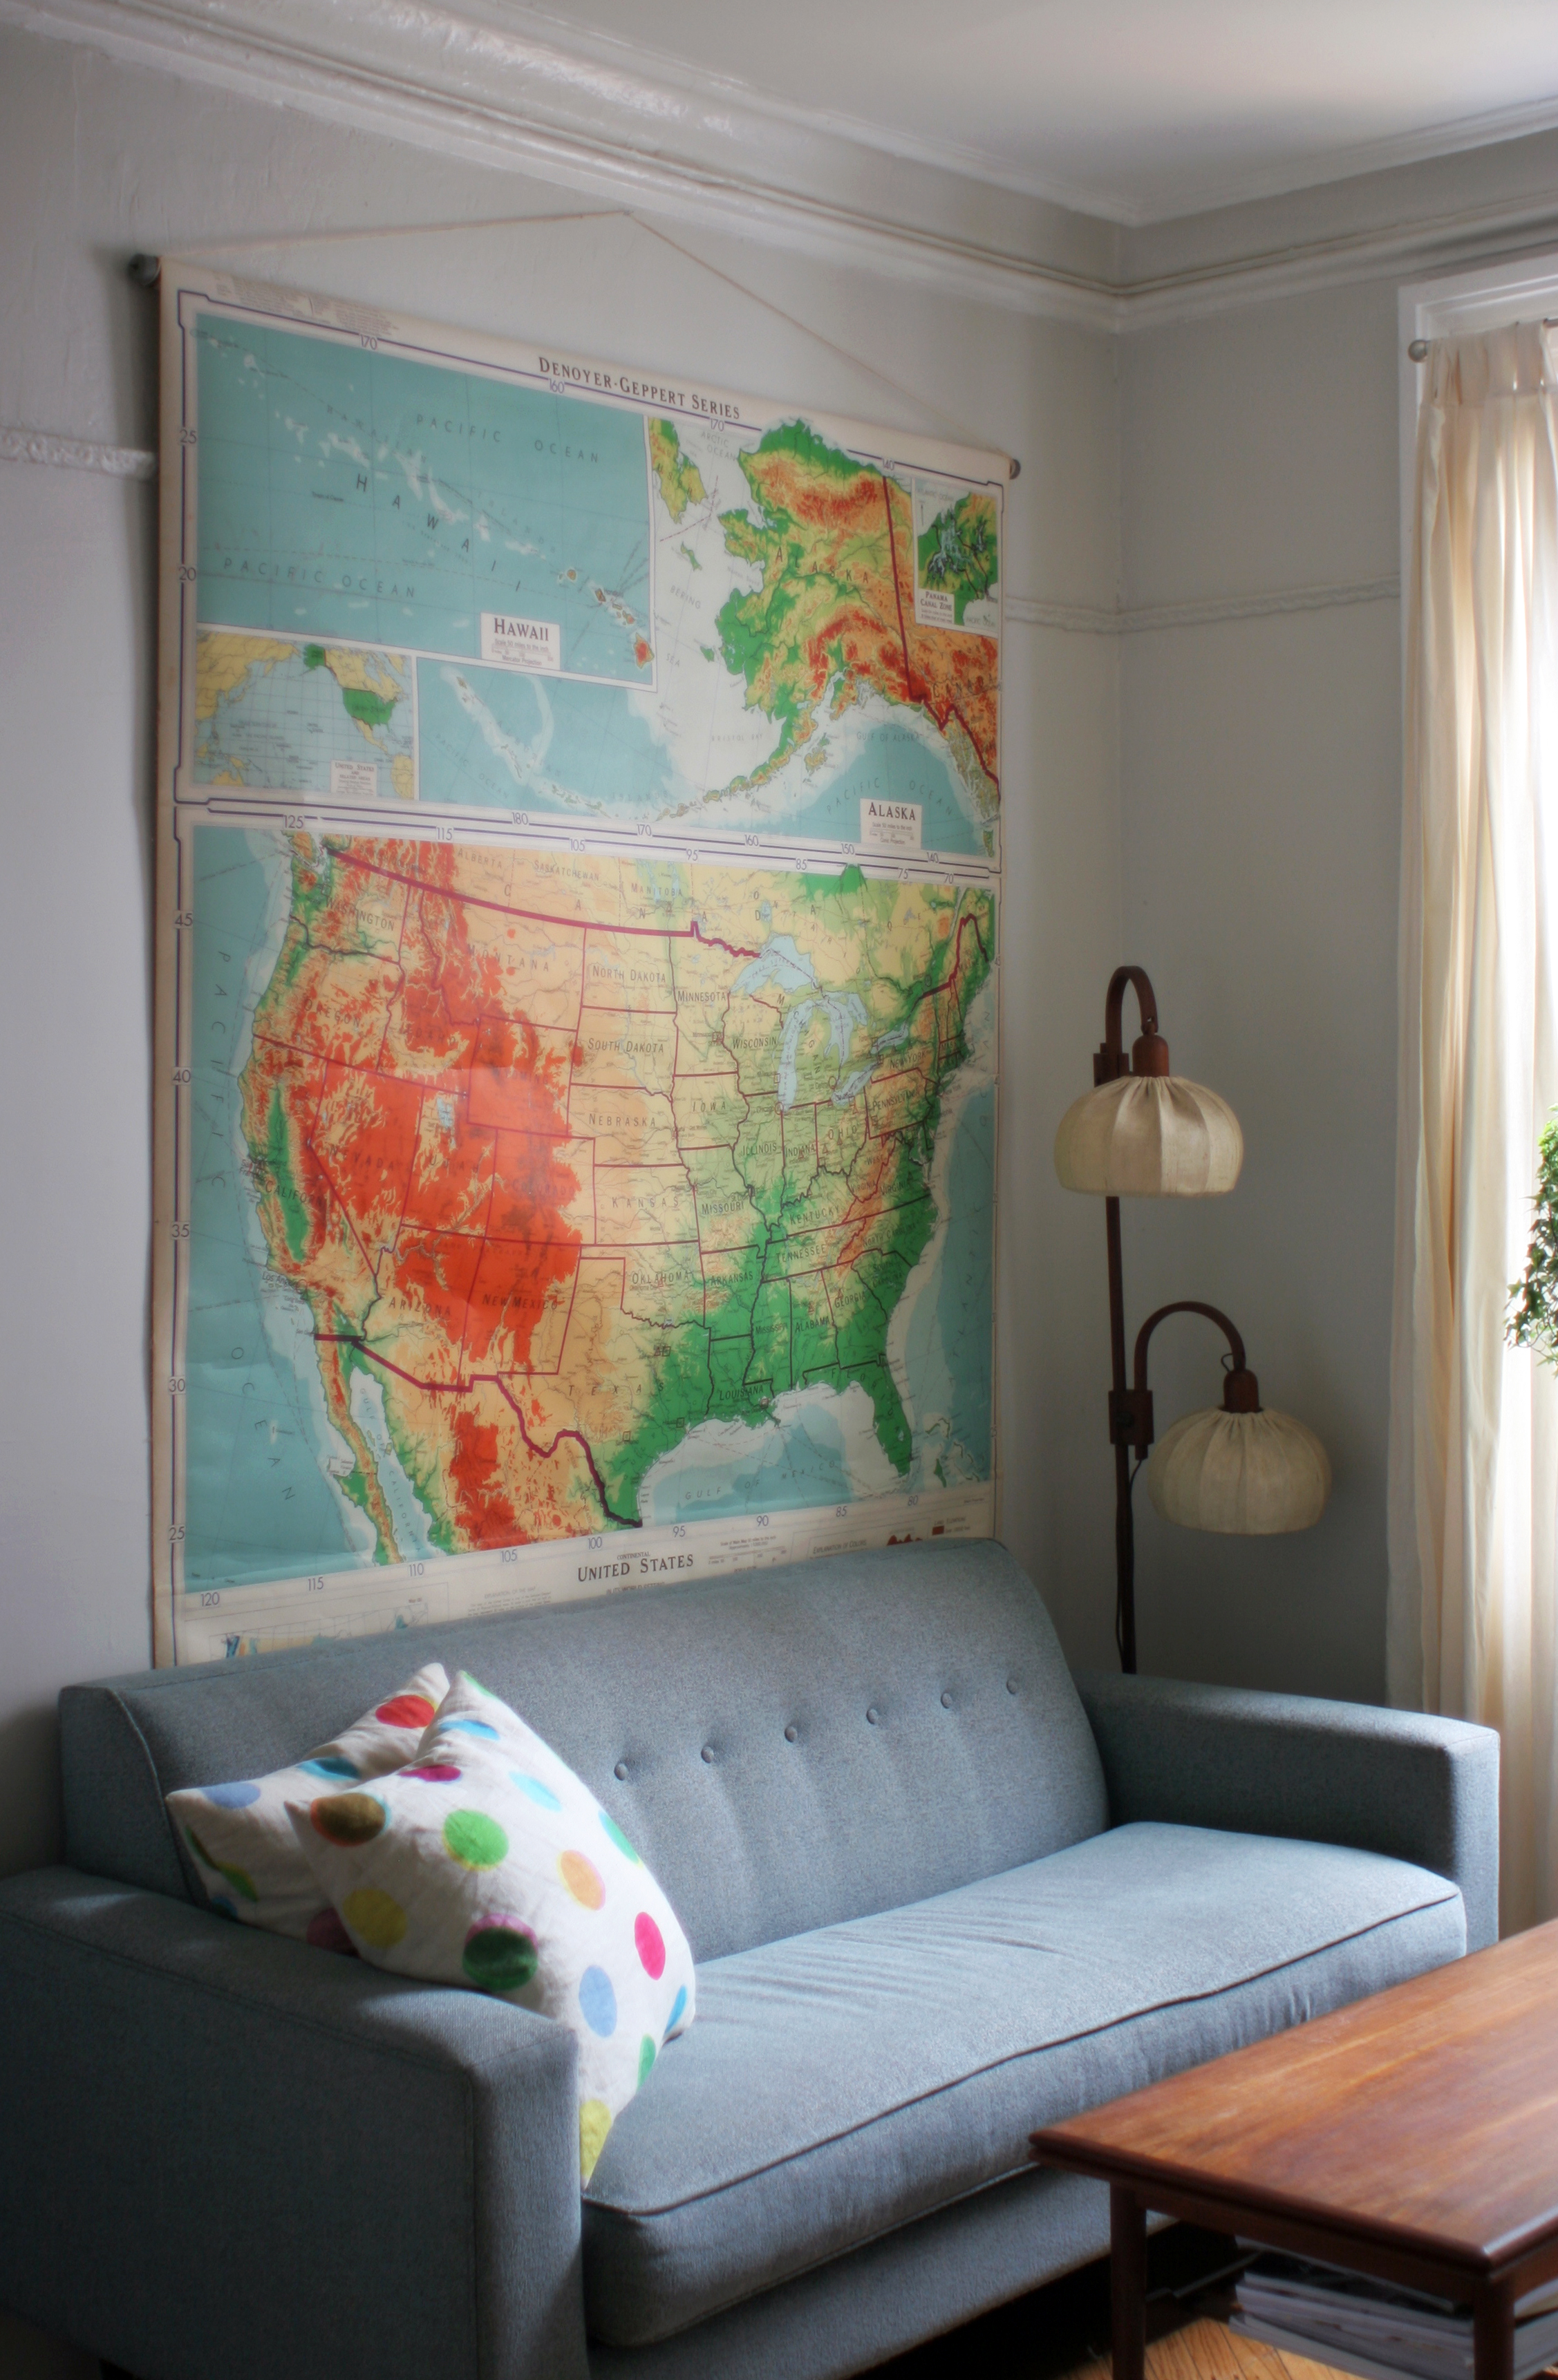 Flea Market Finds Vintage School Map Domesticspace - Cheap vintage maps